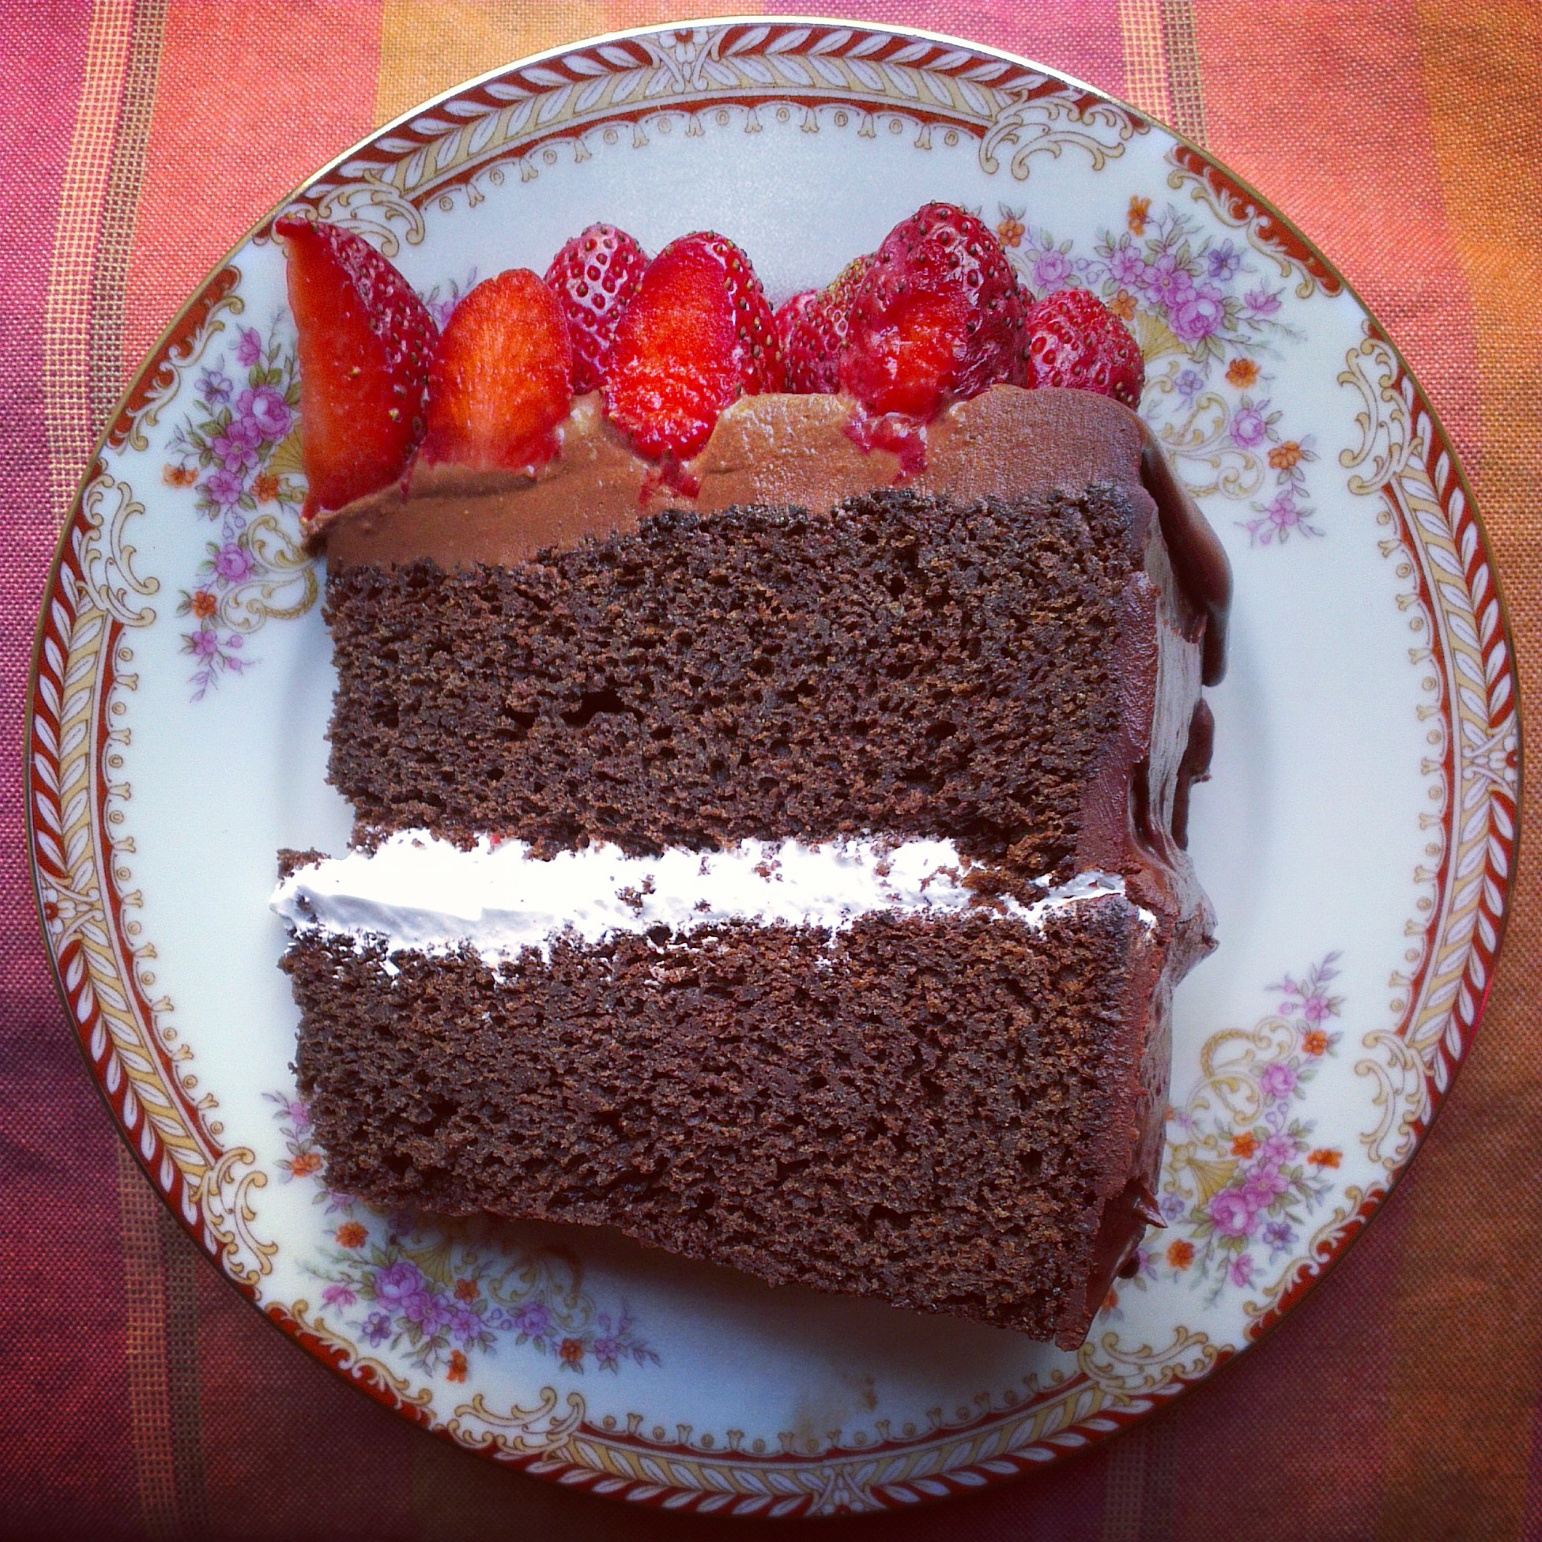 Strawberry Chocolate Decadence